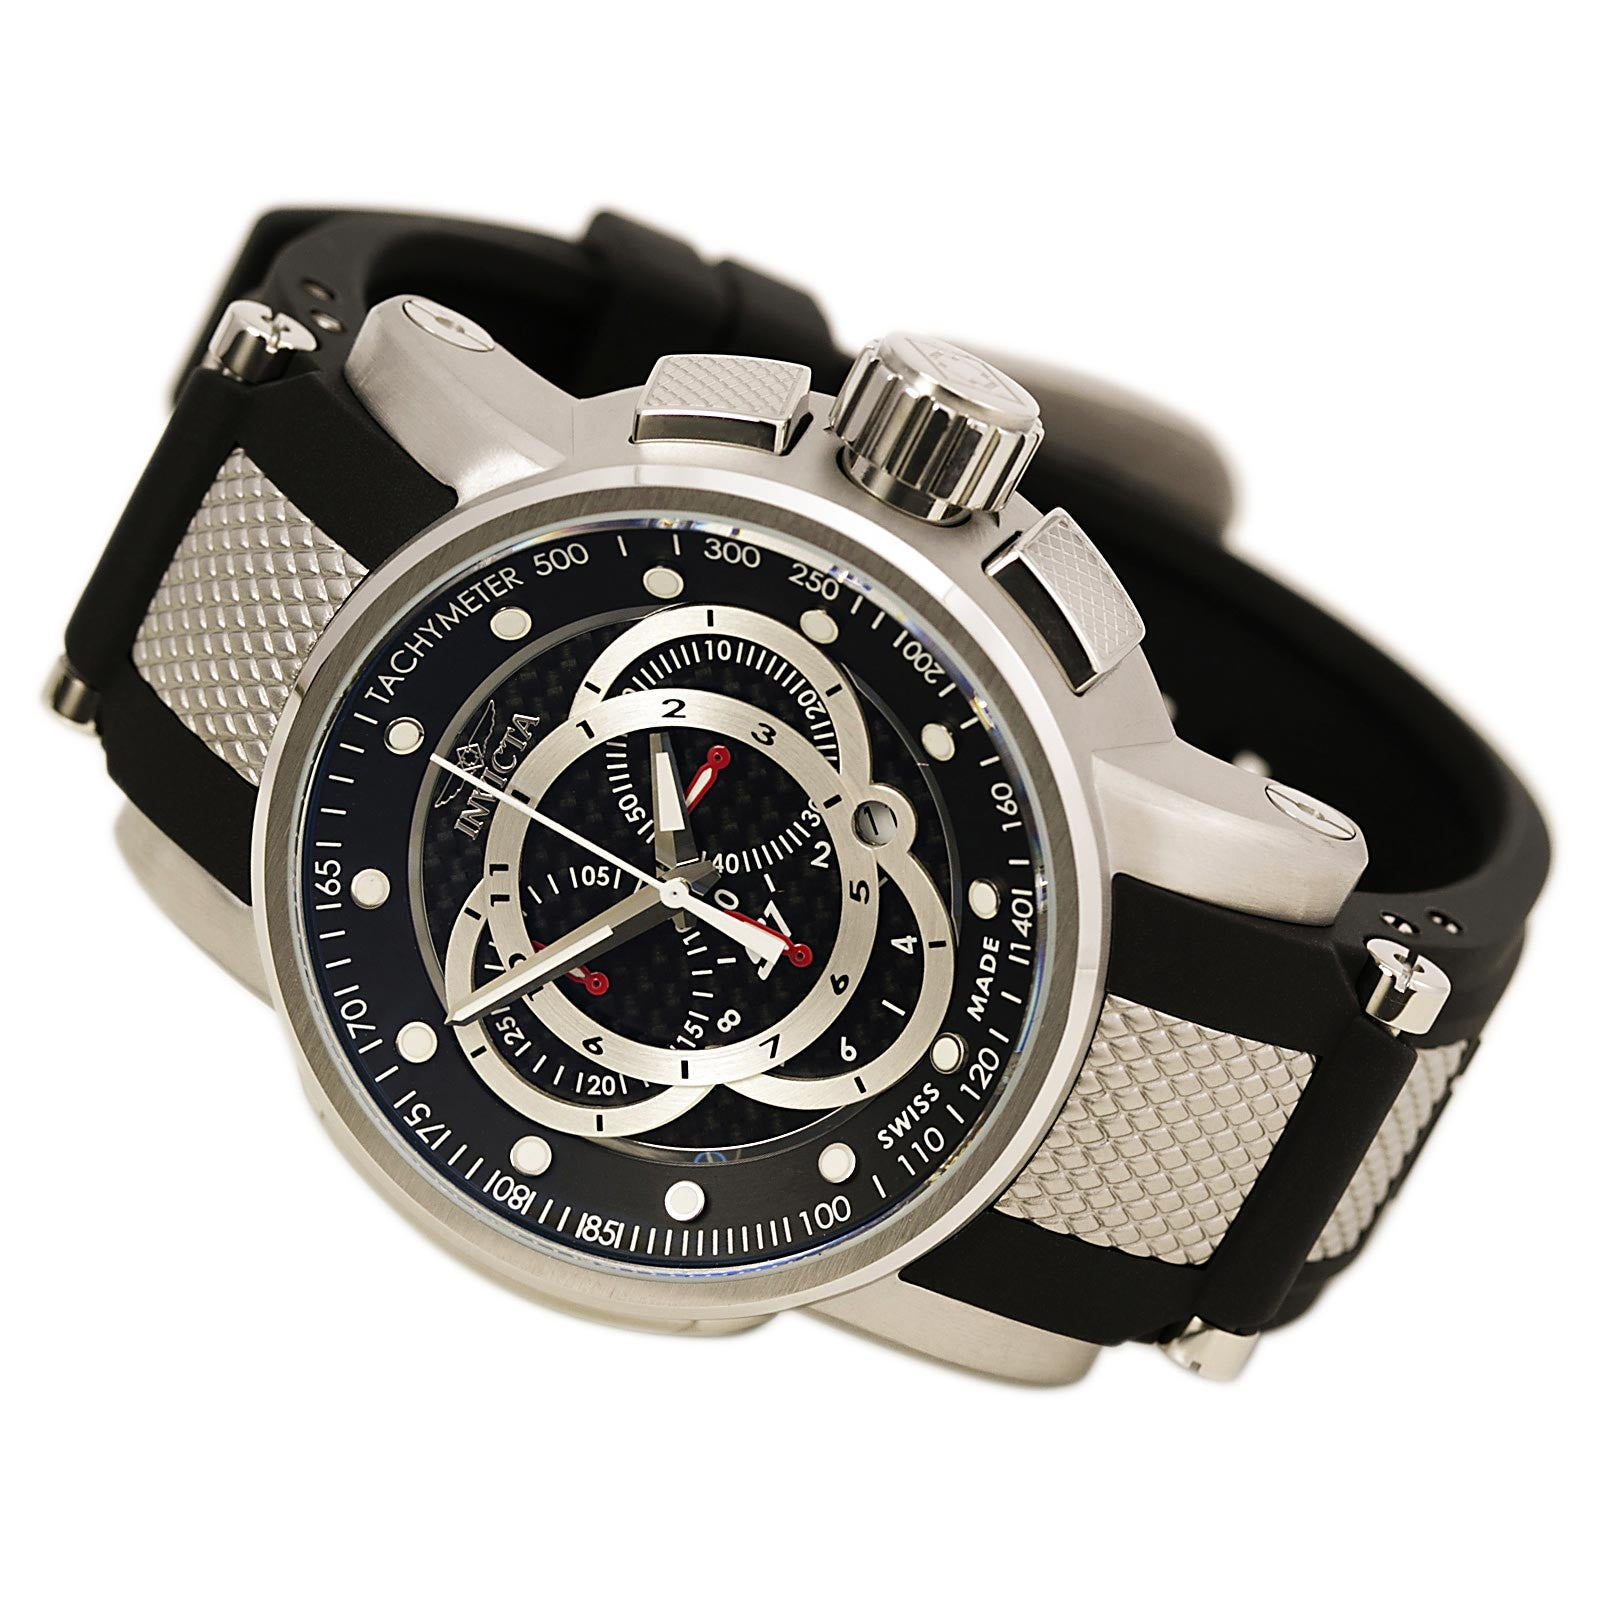 Invicta 0893 Men's S1 Touring Sport Chronograph Black Dial Rubber Strap Watch